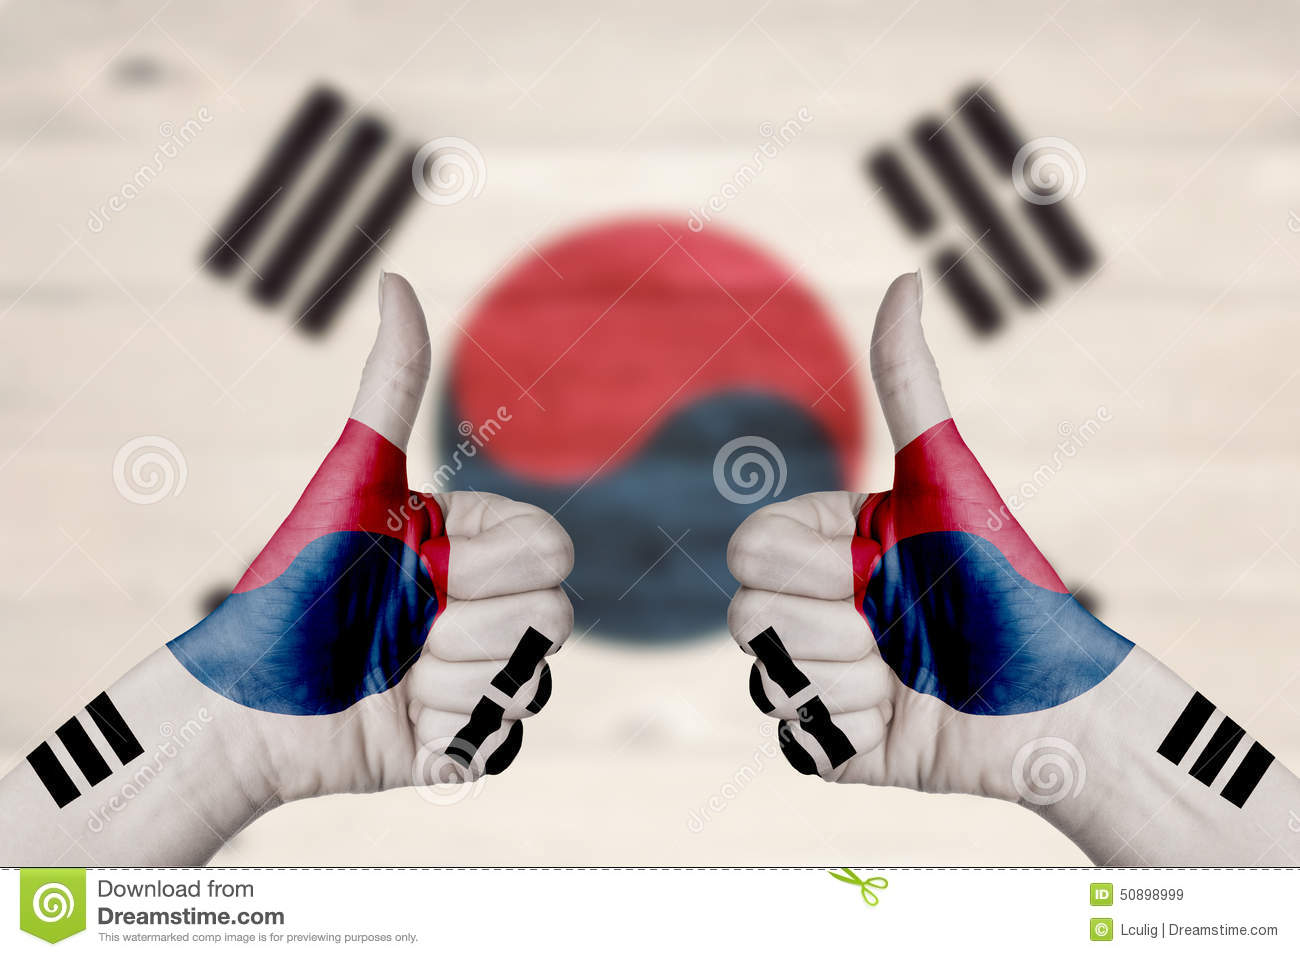 how to say thumbs up in korean